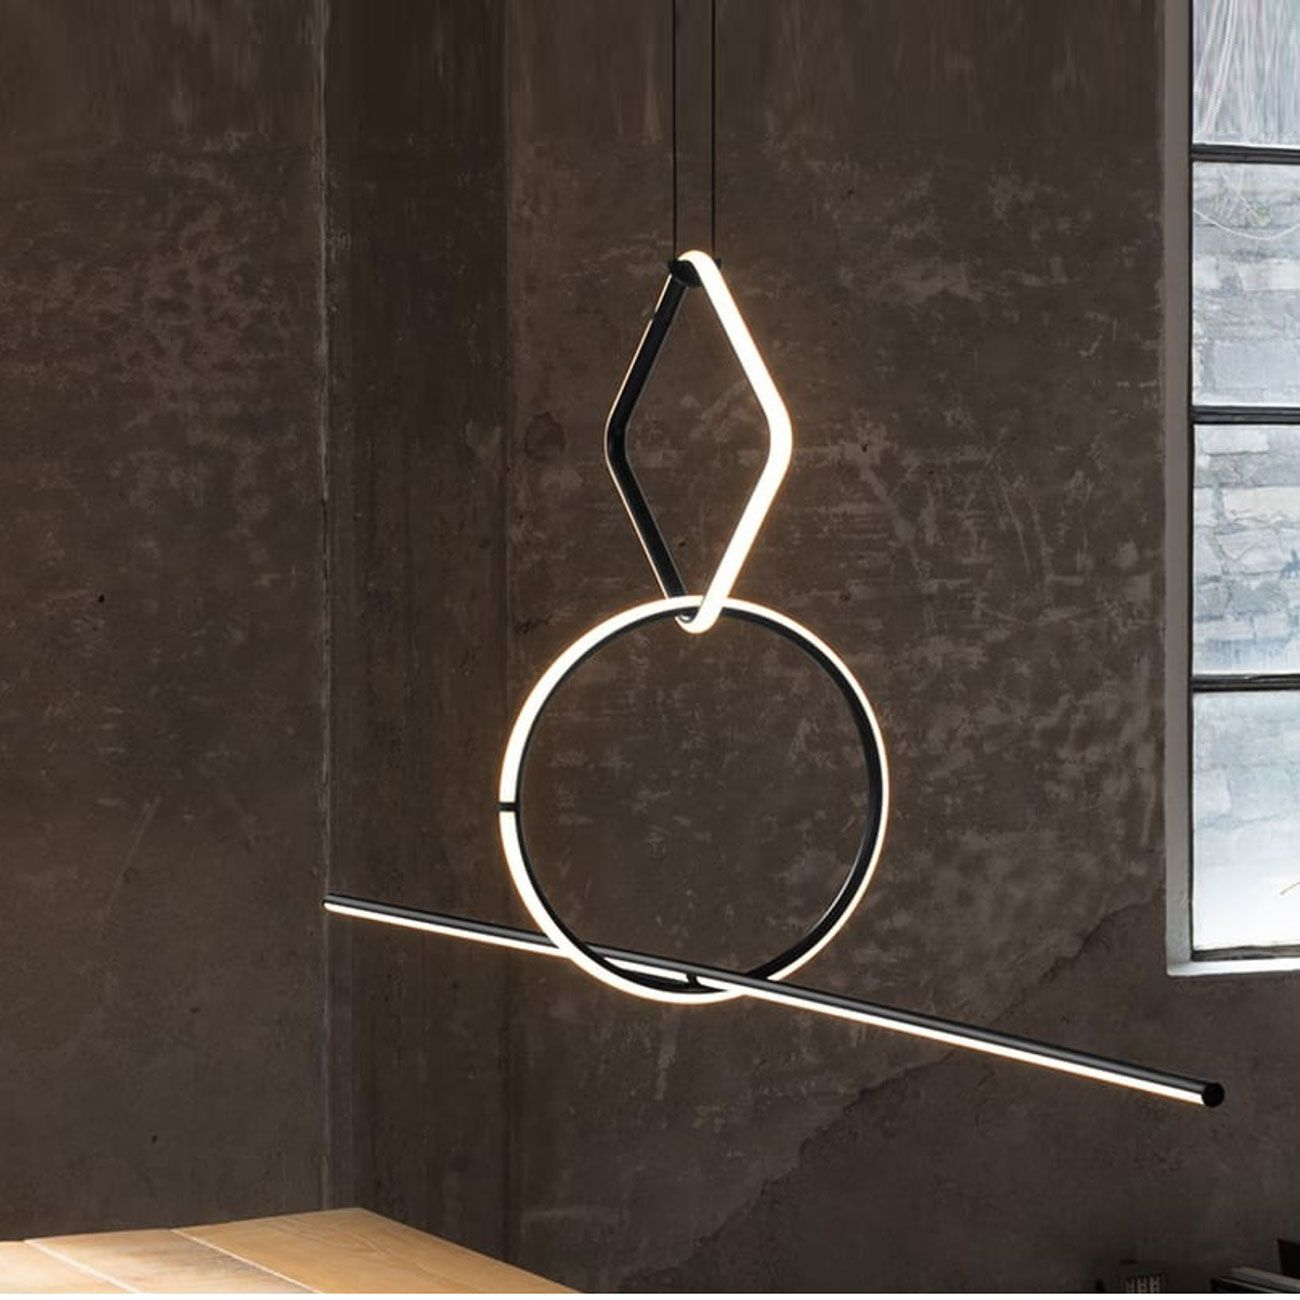 série Arrangements de Michael Anastassiades